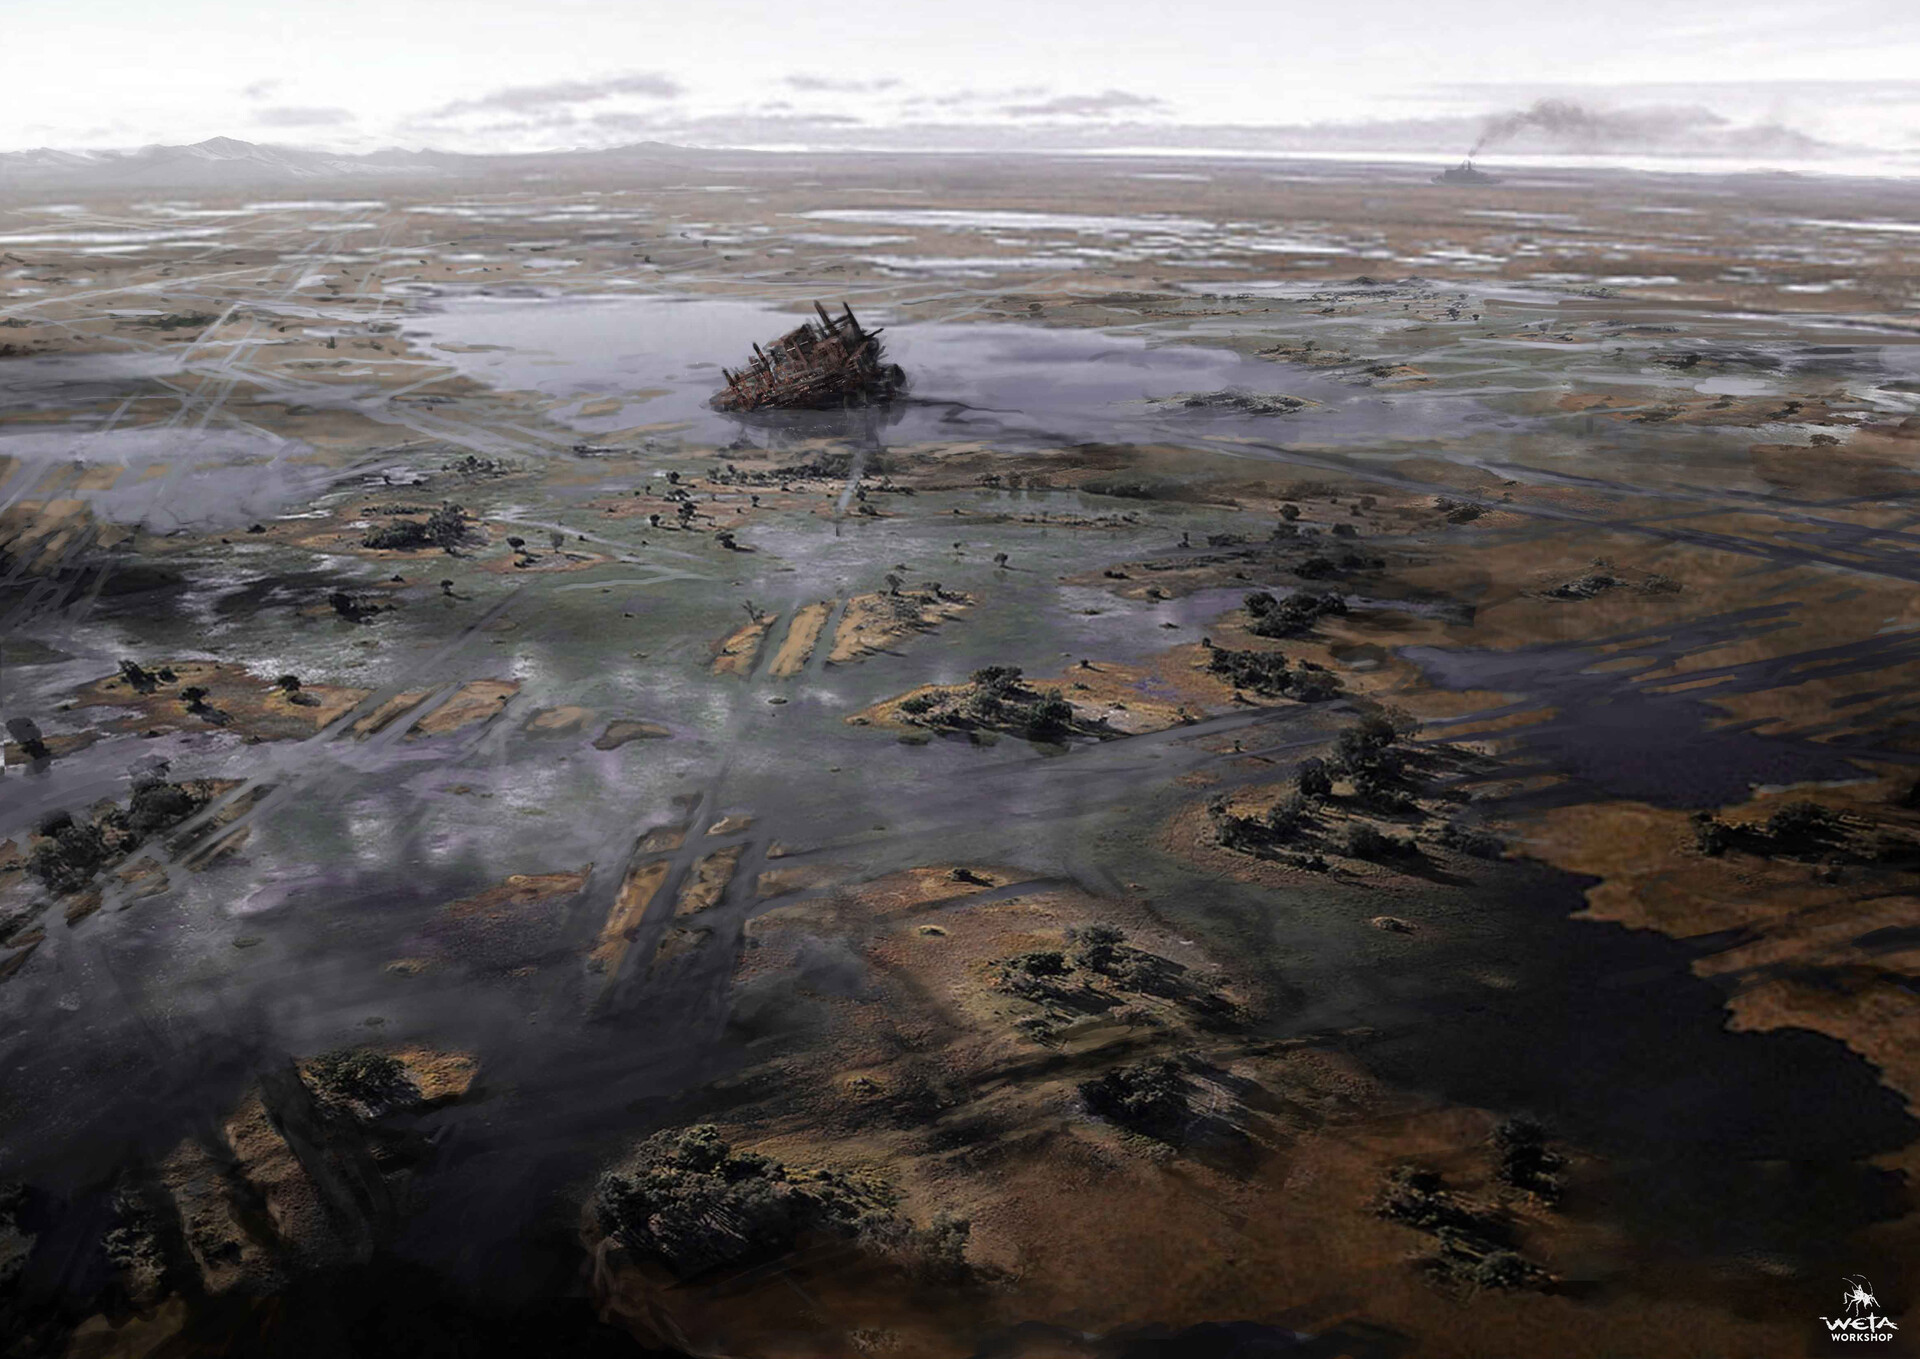 Weta workshop design studio rustwater marshes nk